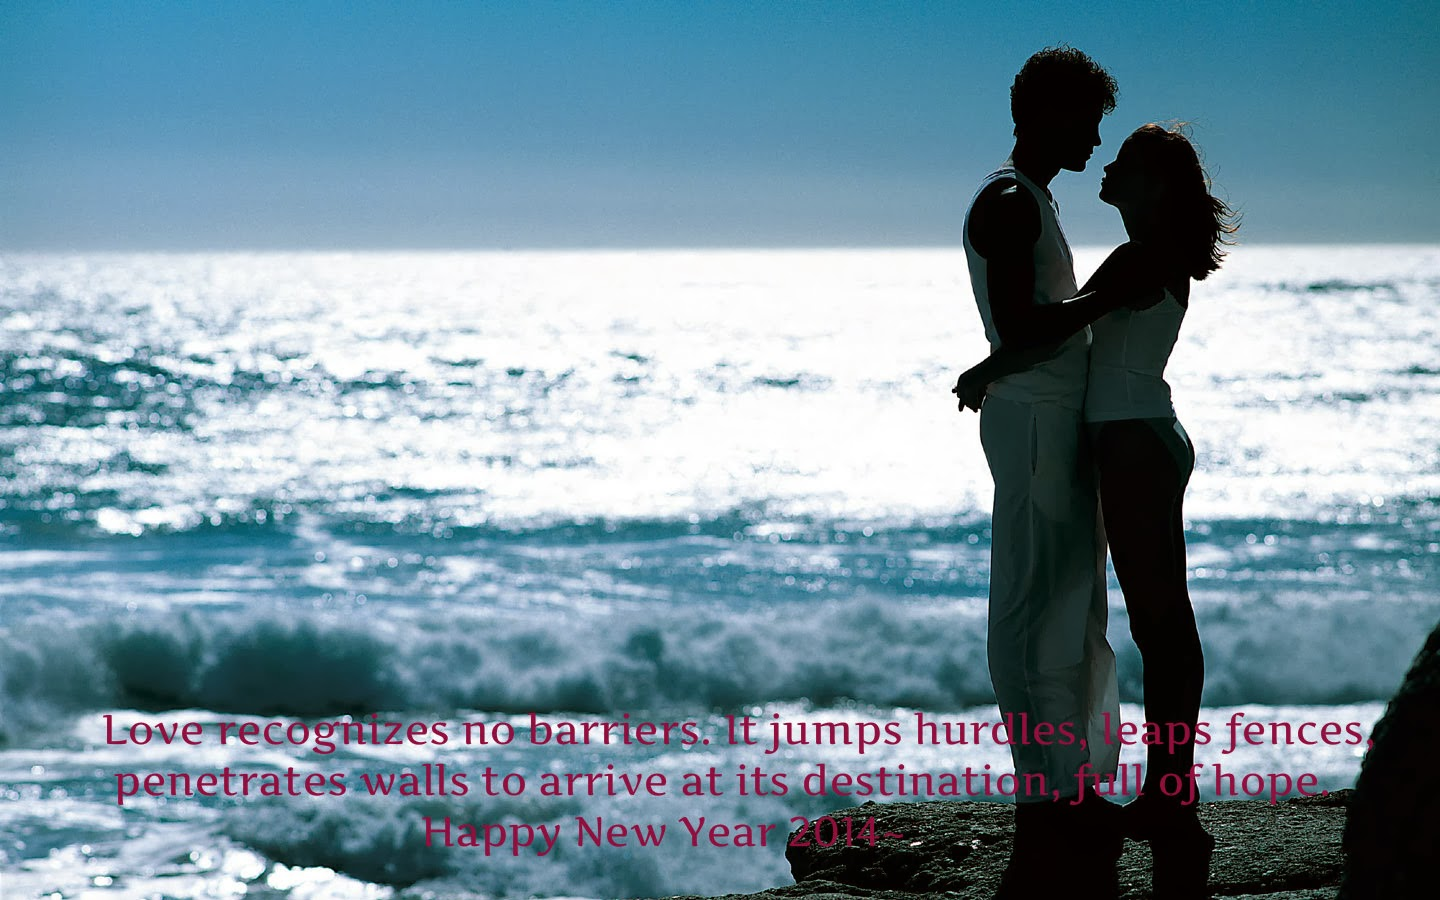 Happy New Year Love Quotes 2014 for Lovers | Five Best New ...